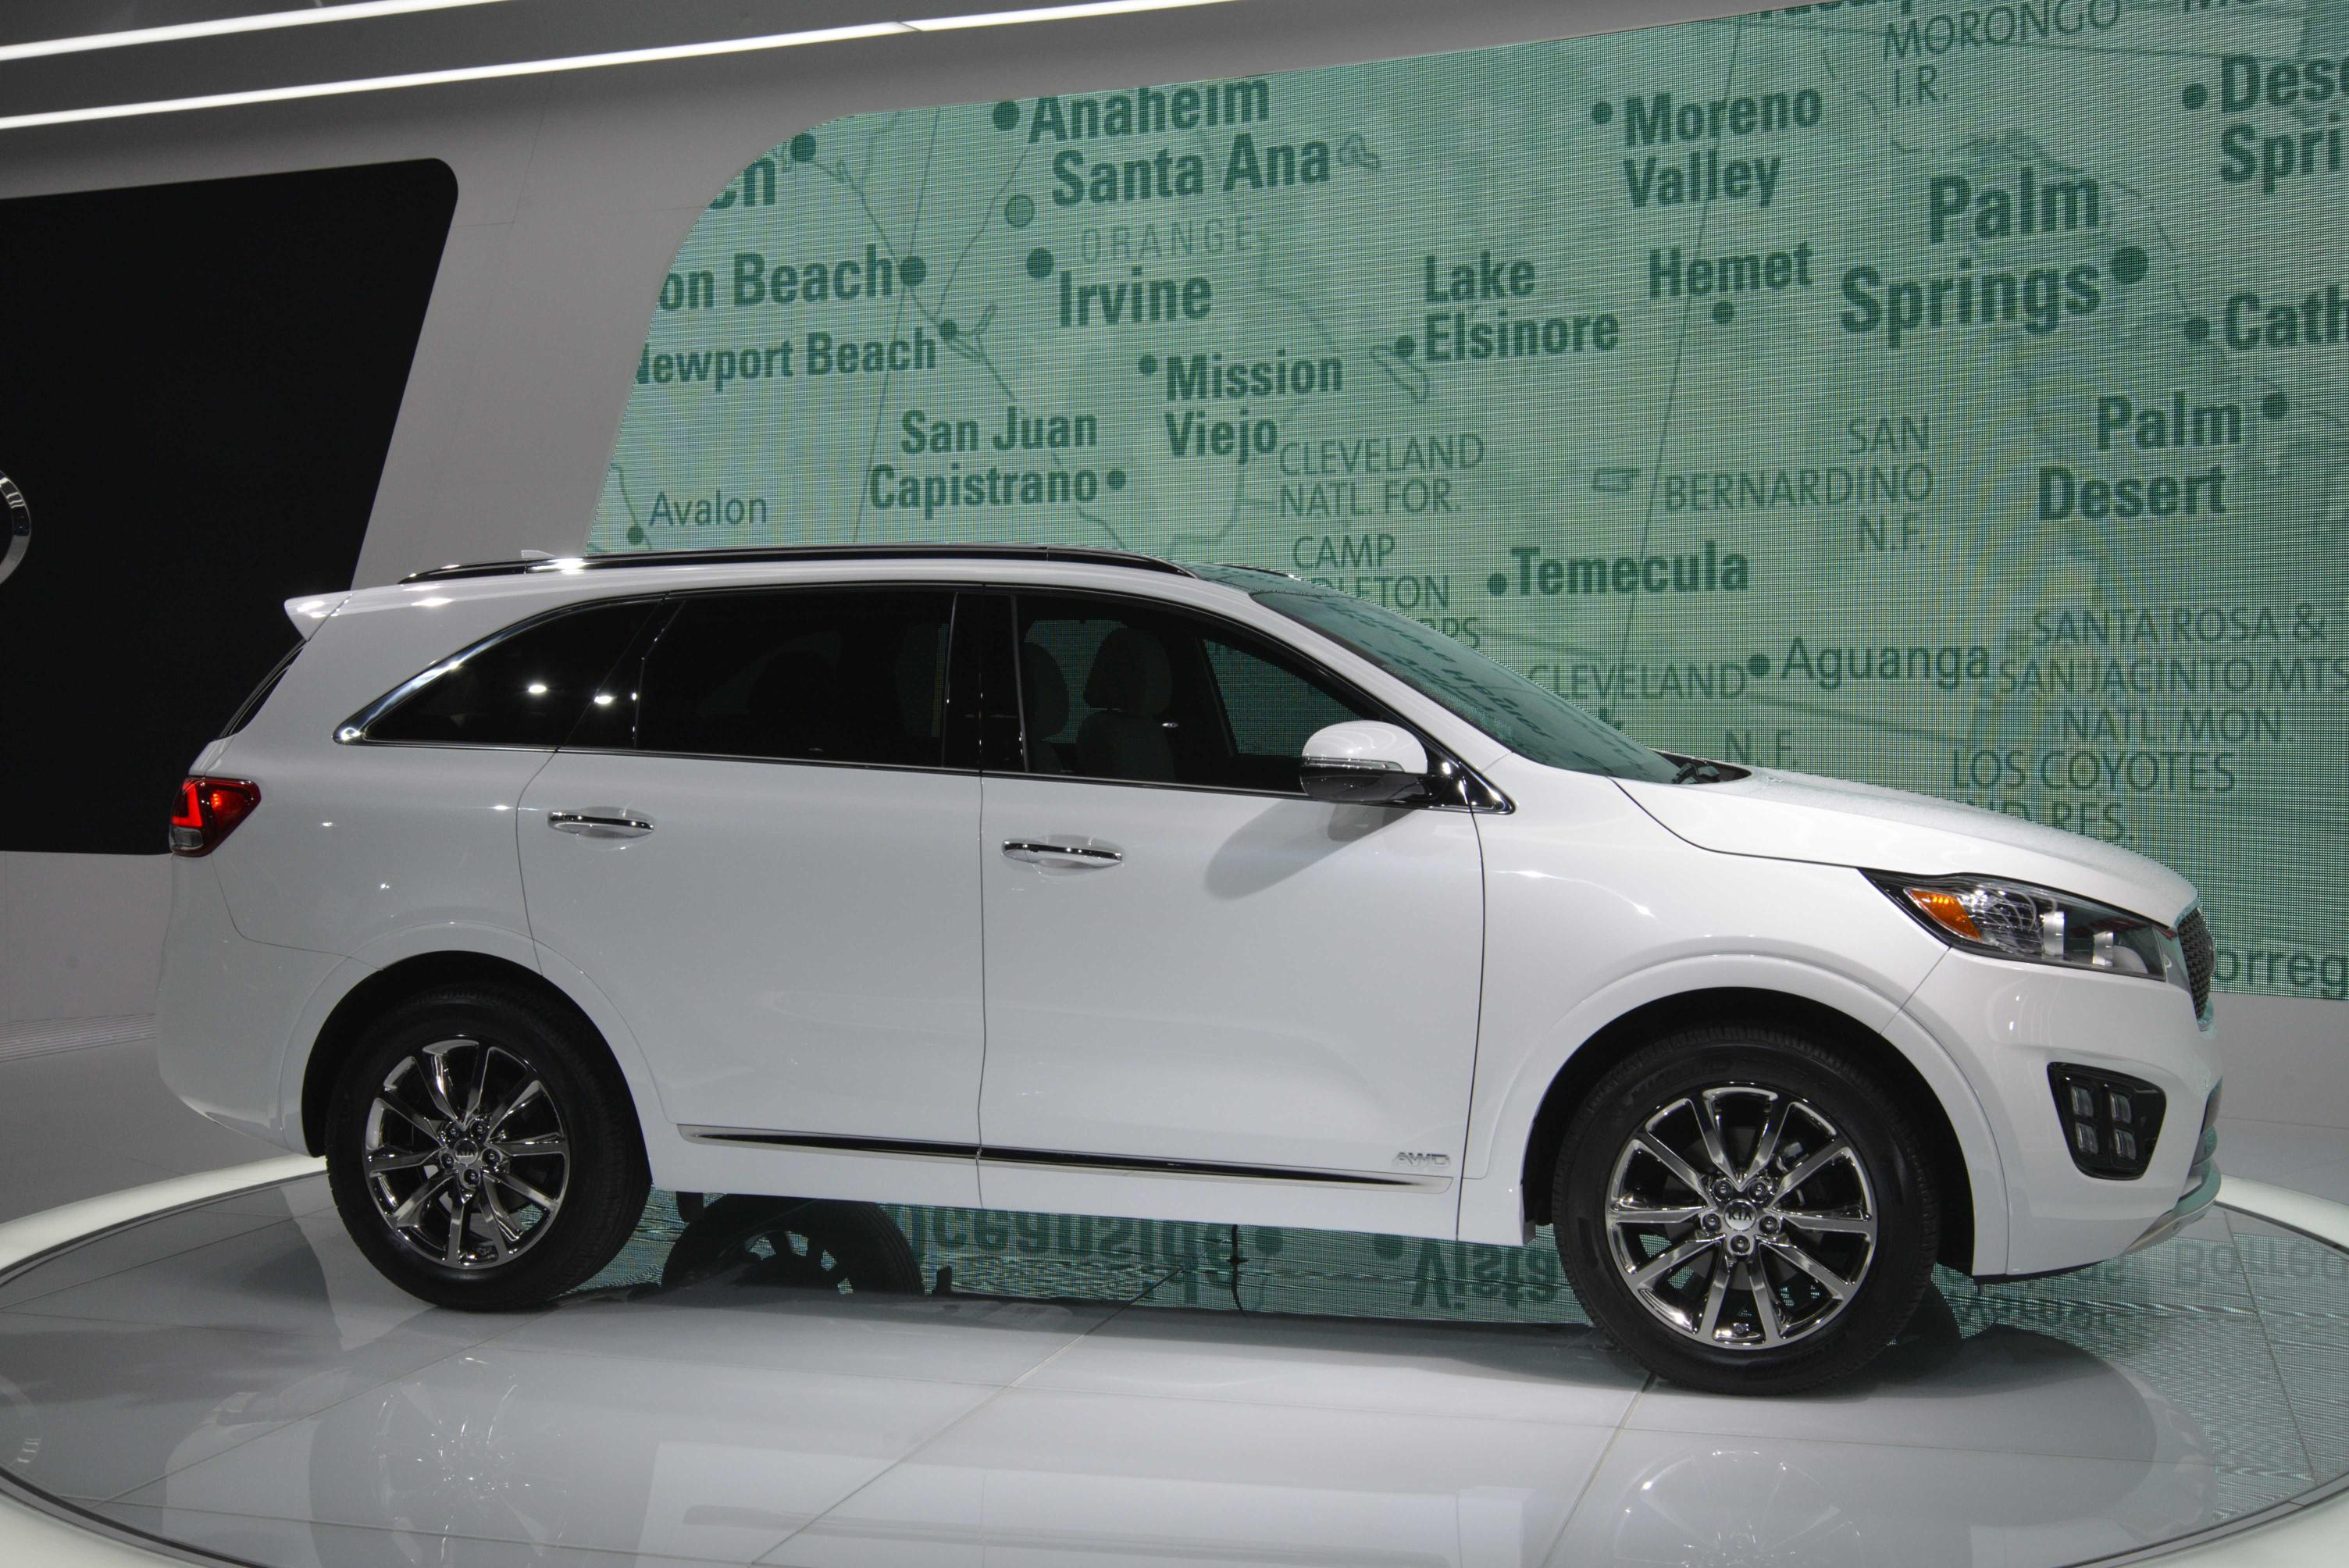 2016 kia sorento appears at los angeles auto show live for Kia motor finance physical payoff address